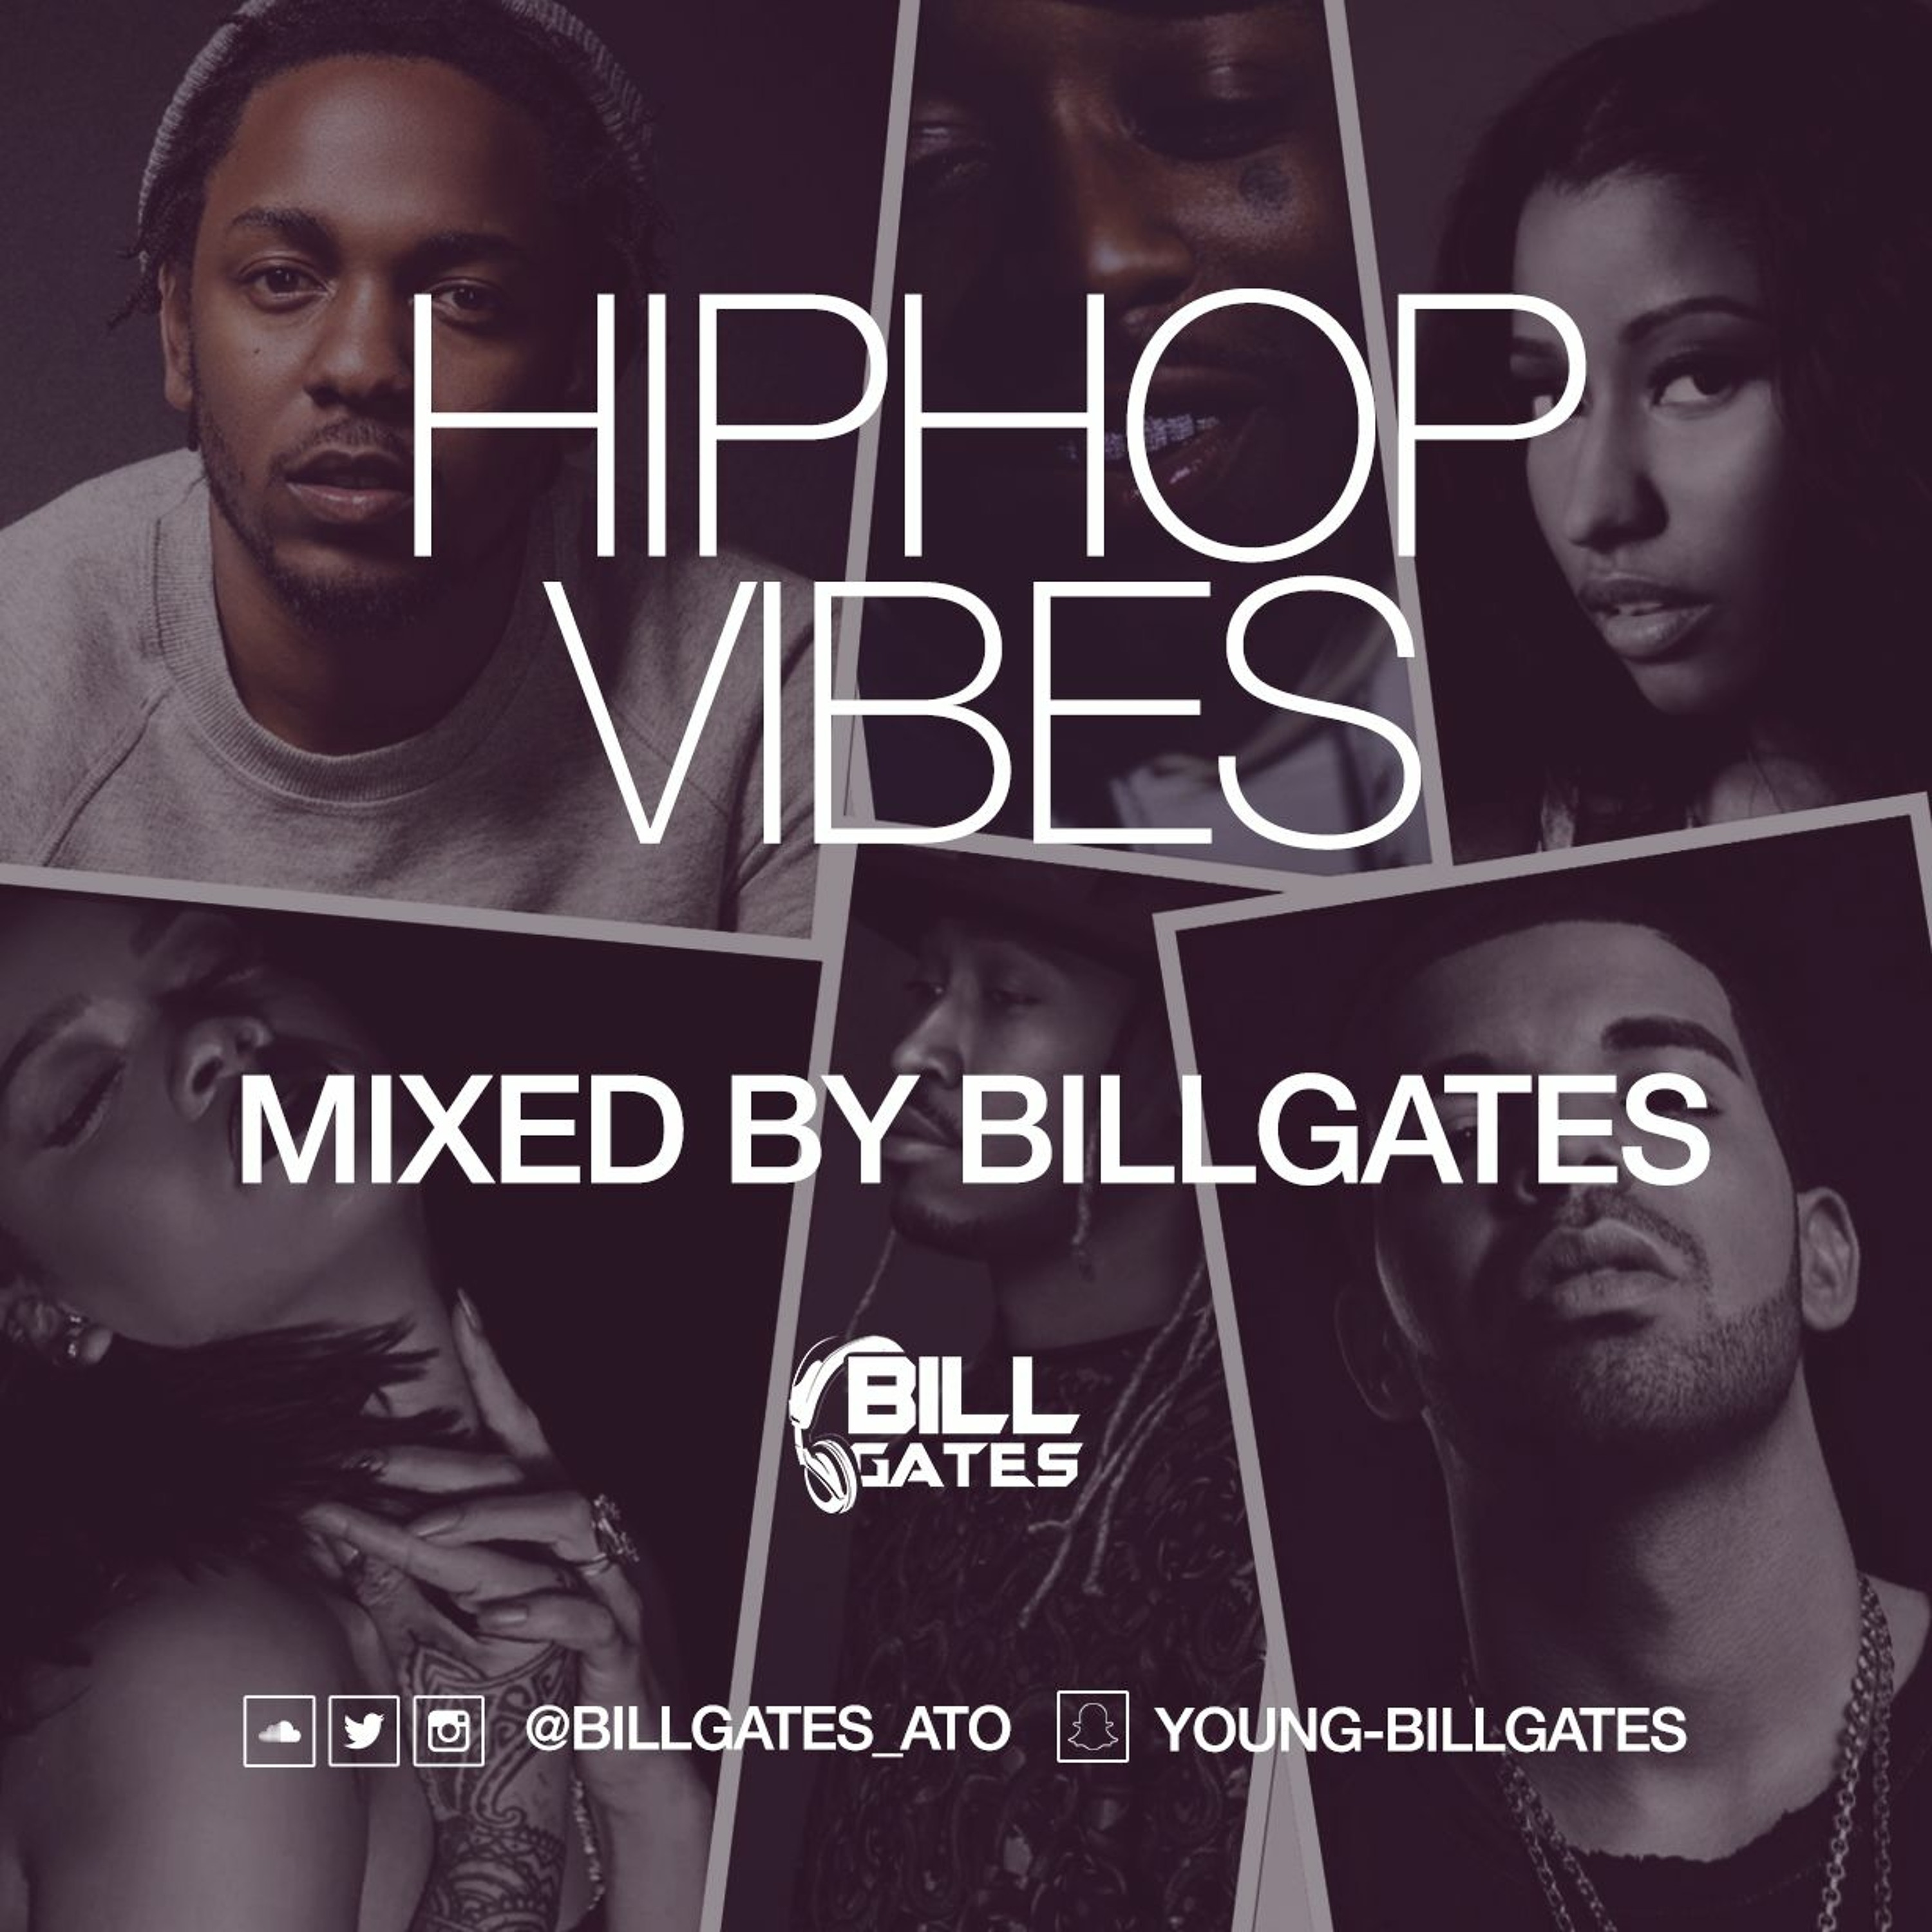 HipHop Vibes 4 Mixed By Spaceship Billy